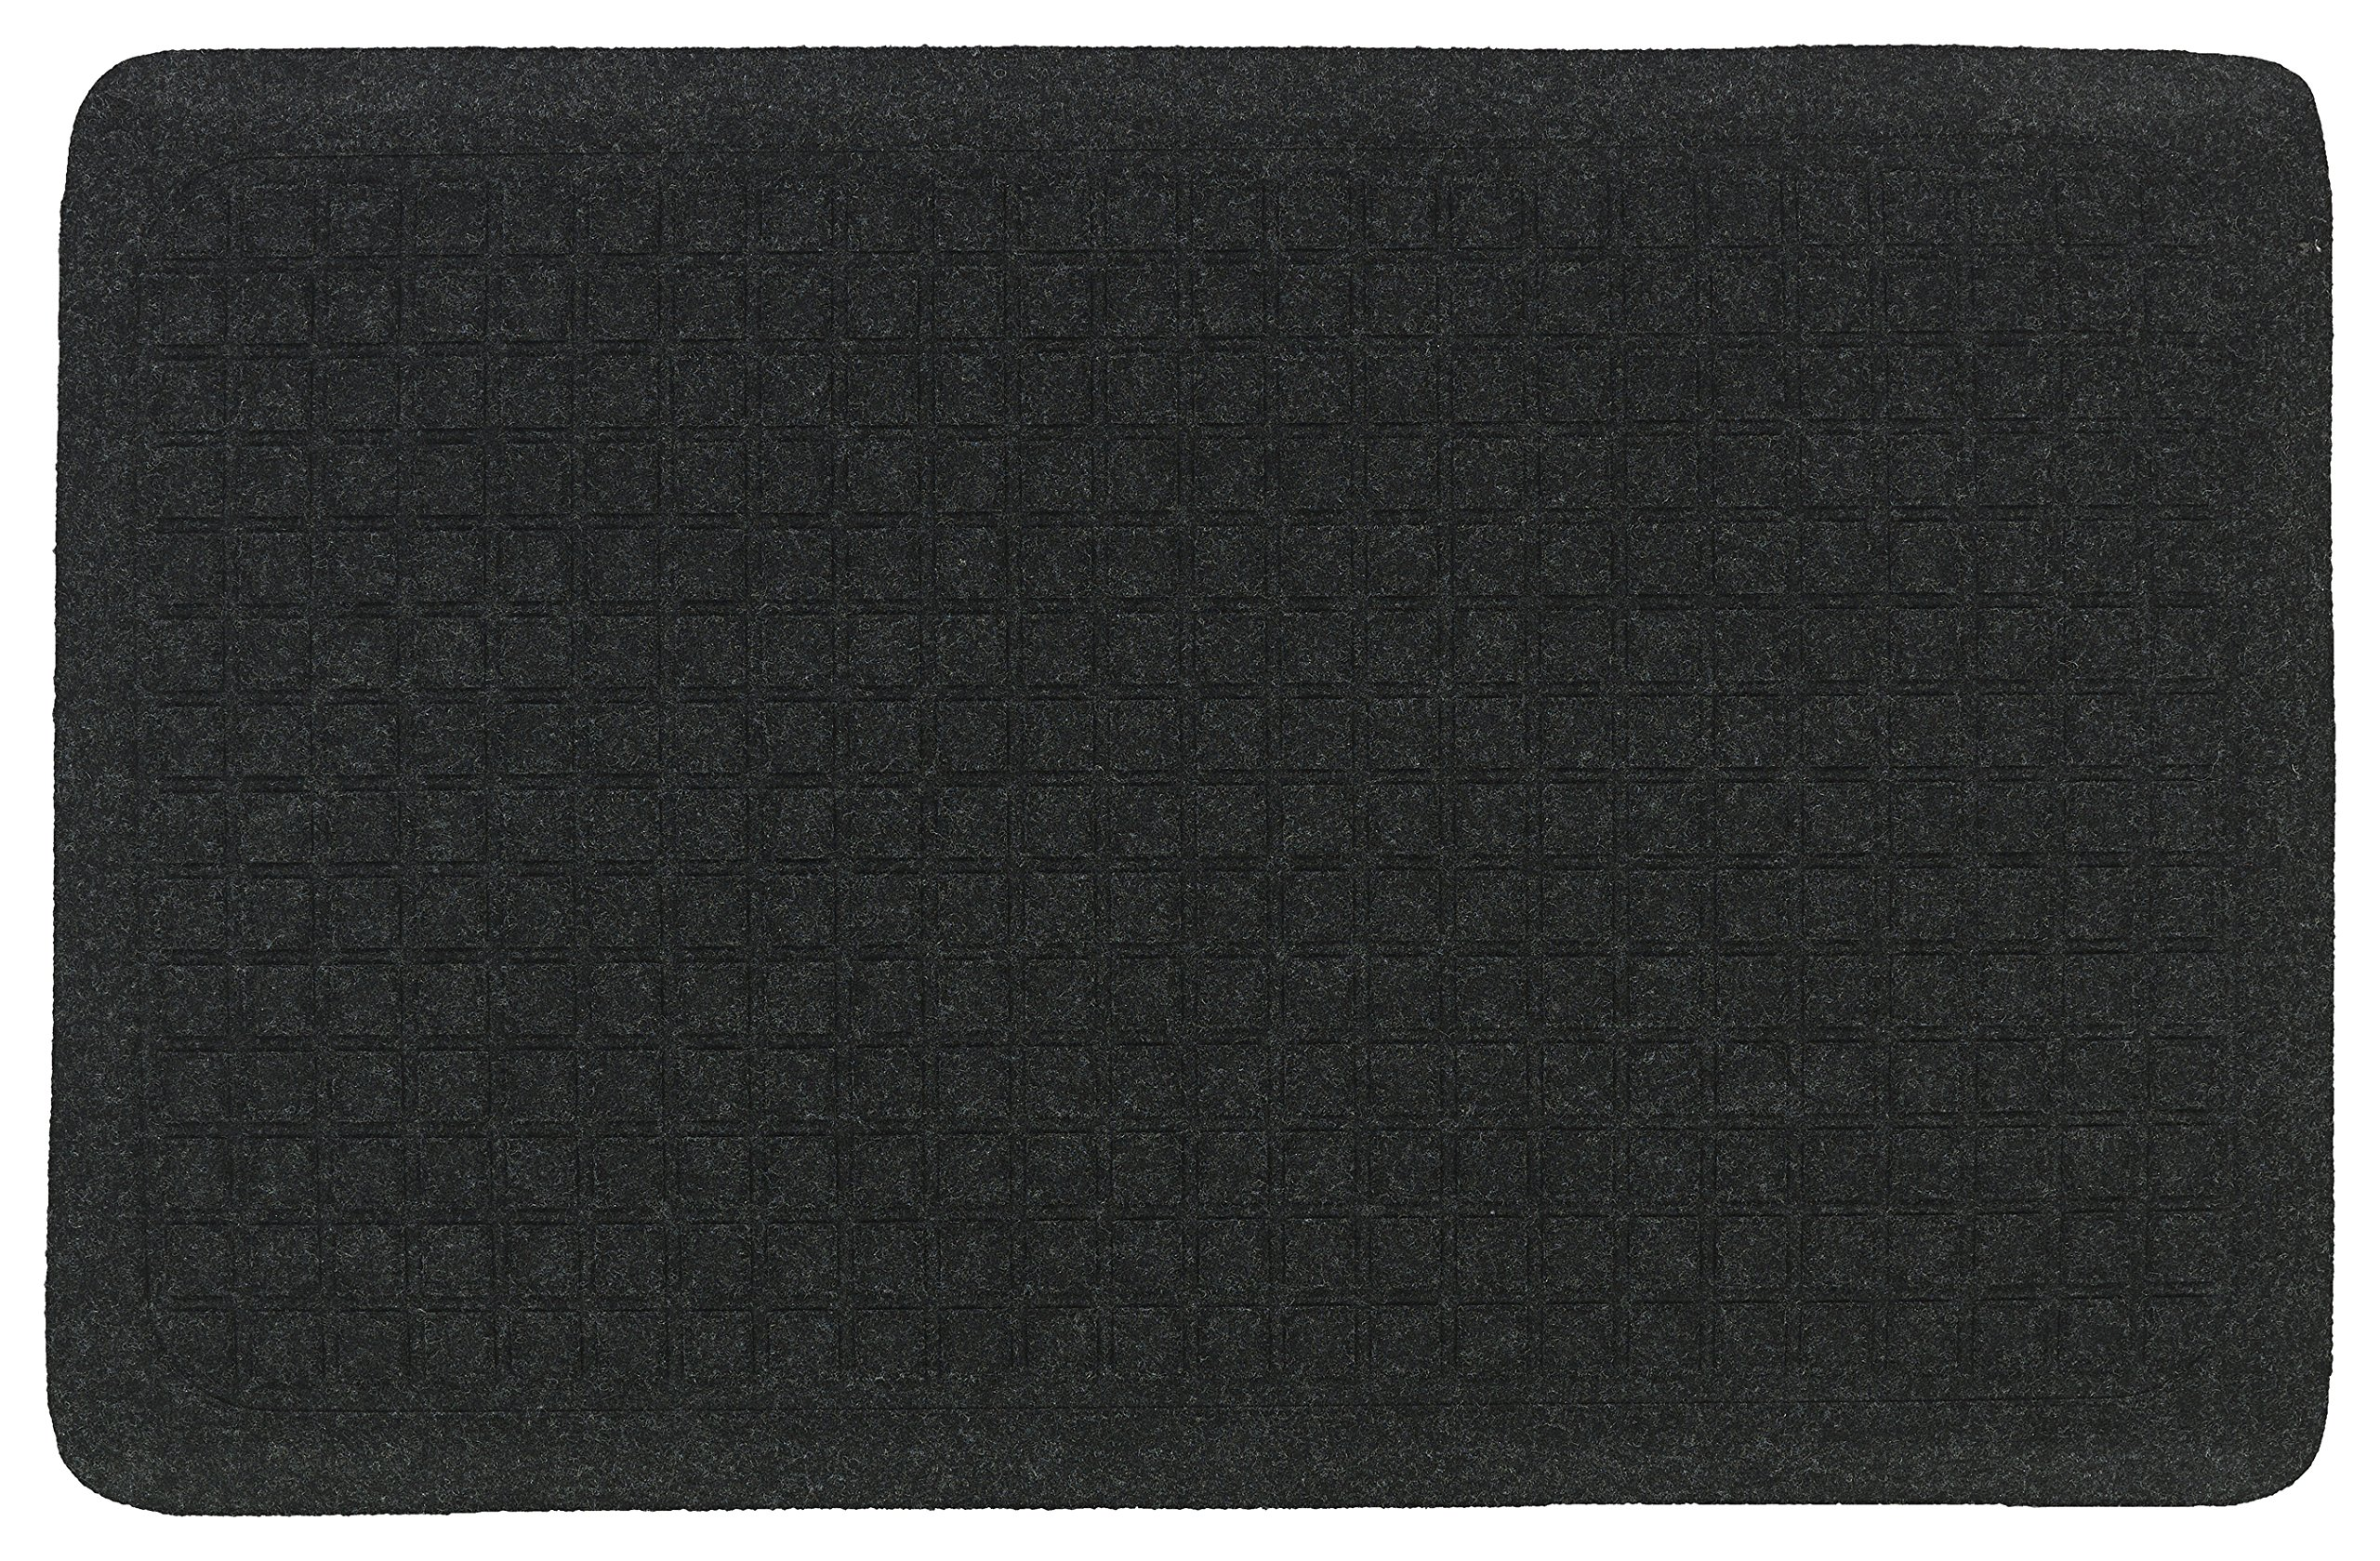 M+A Matting 4443012232 Get Fit Stand Up 4443 Anti-Fatigue Mat for Dry Areas, 22'' x 32'', 5/8'' Thickness, Coal Black